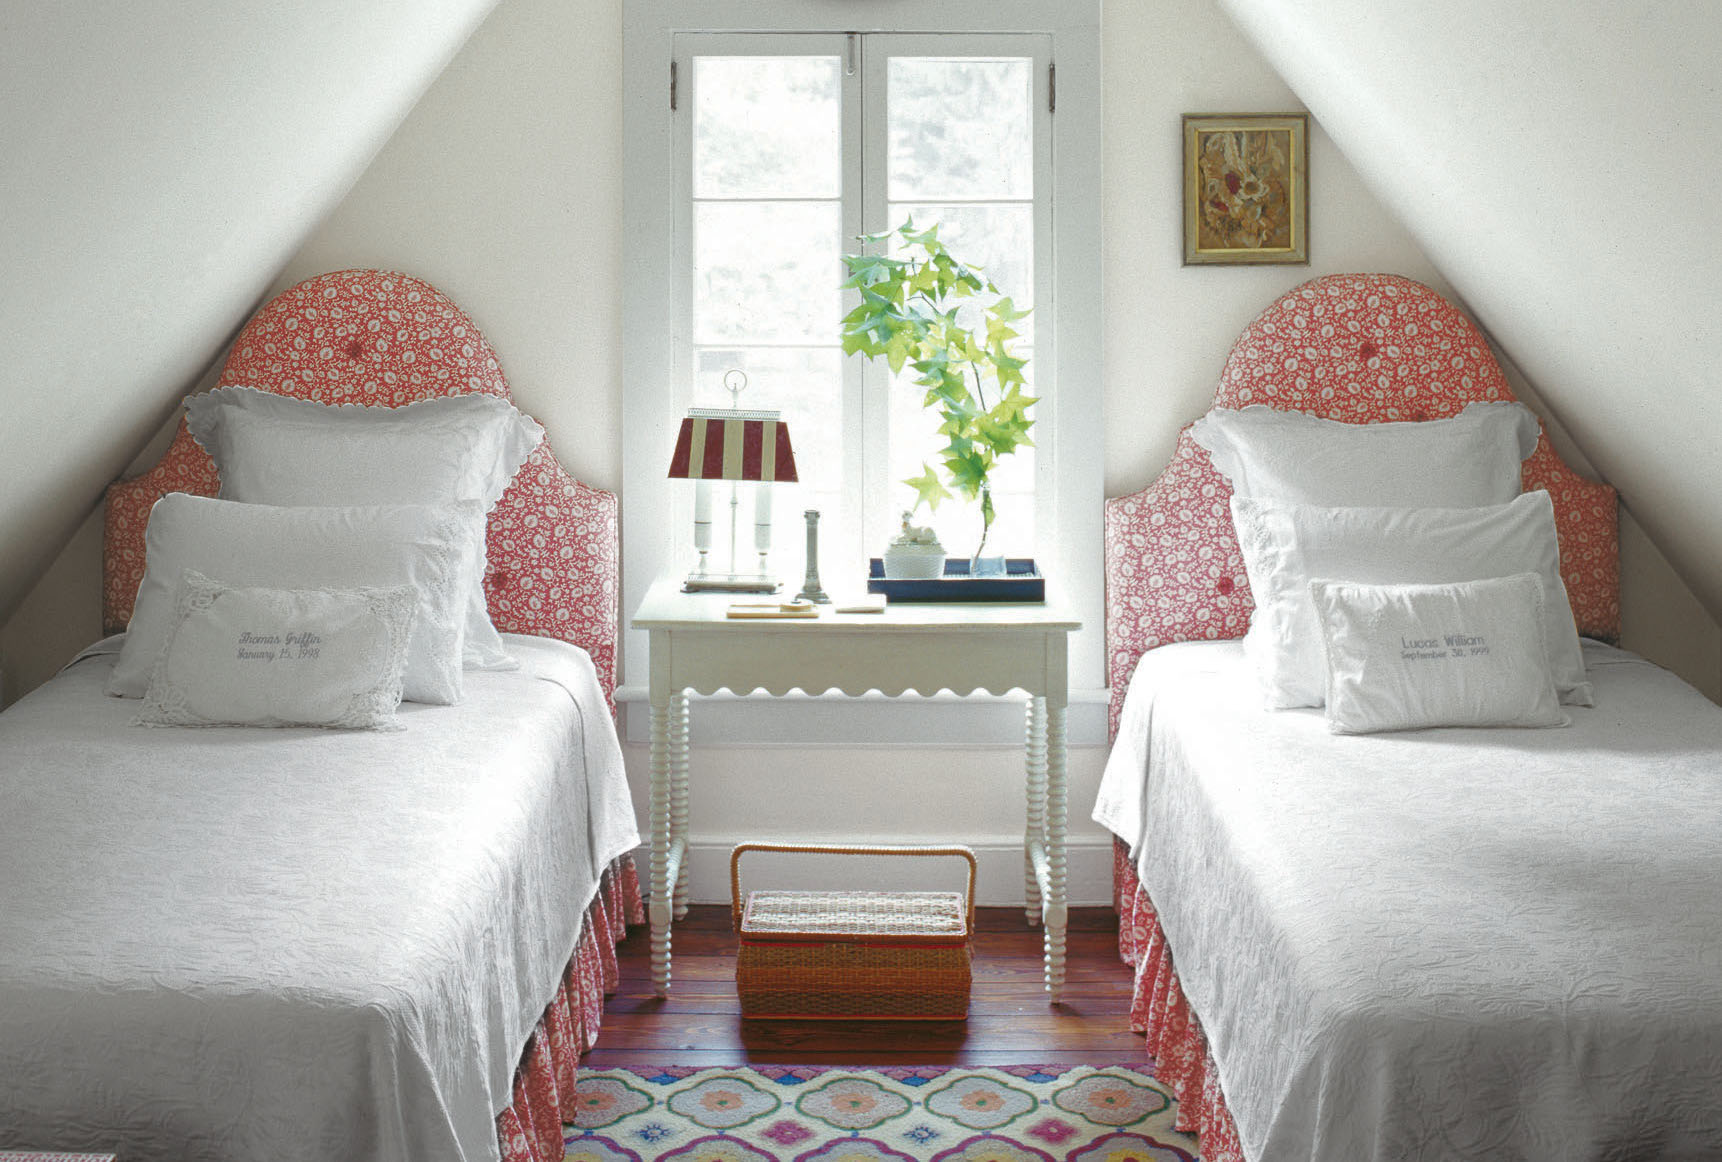 20 Small Bedroom Design Ideas -Decorating Tips For Small